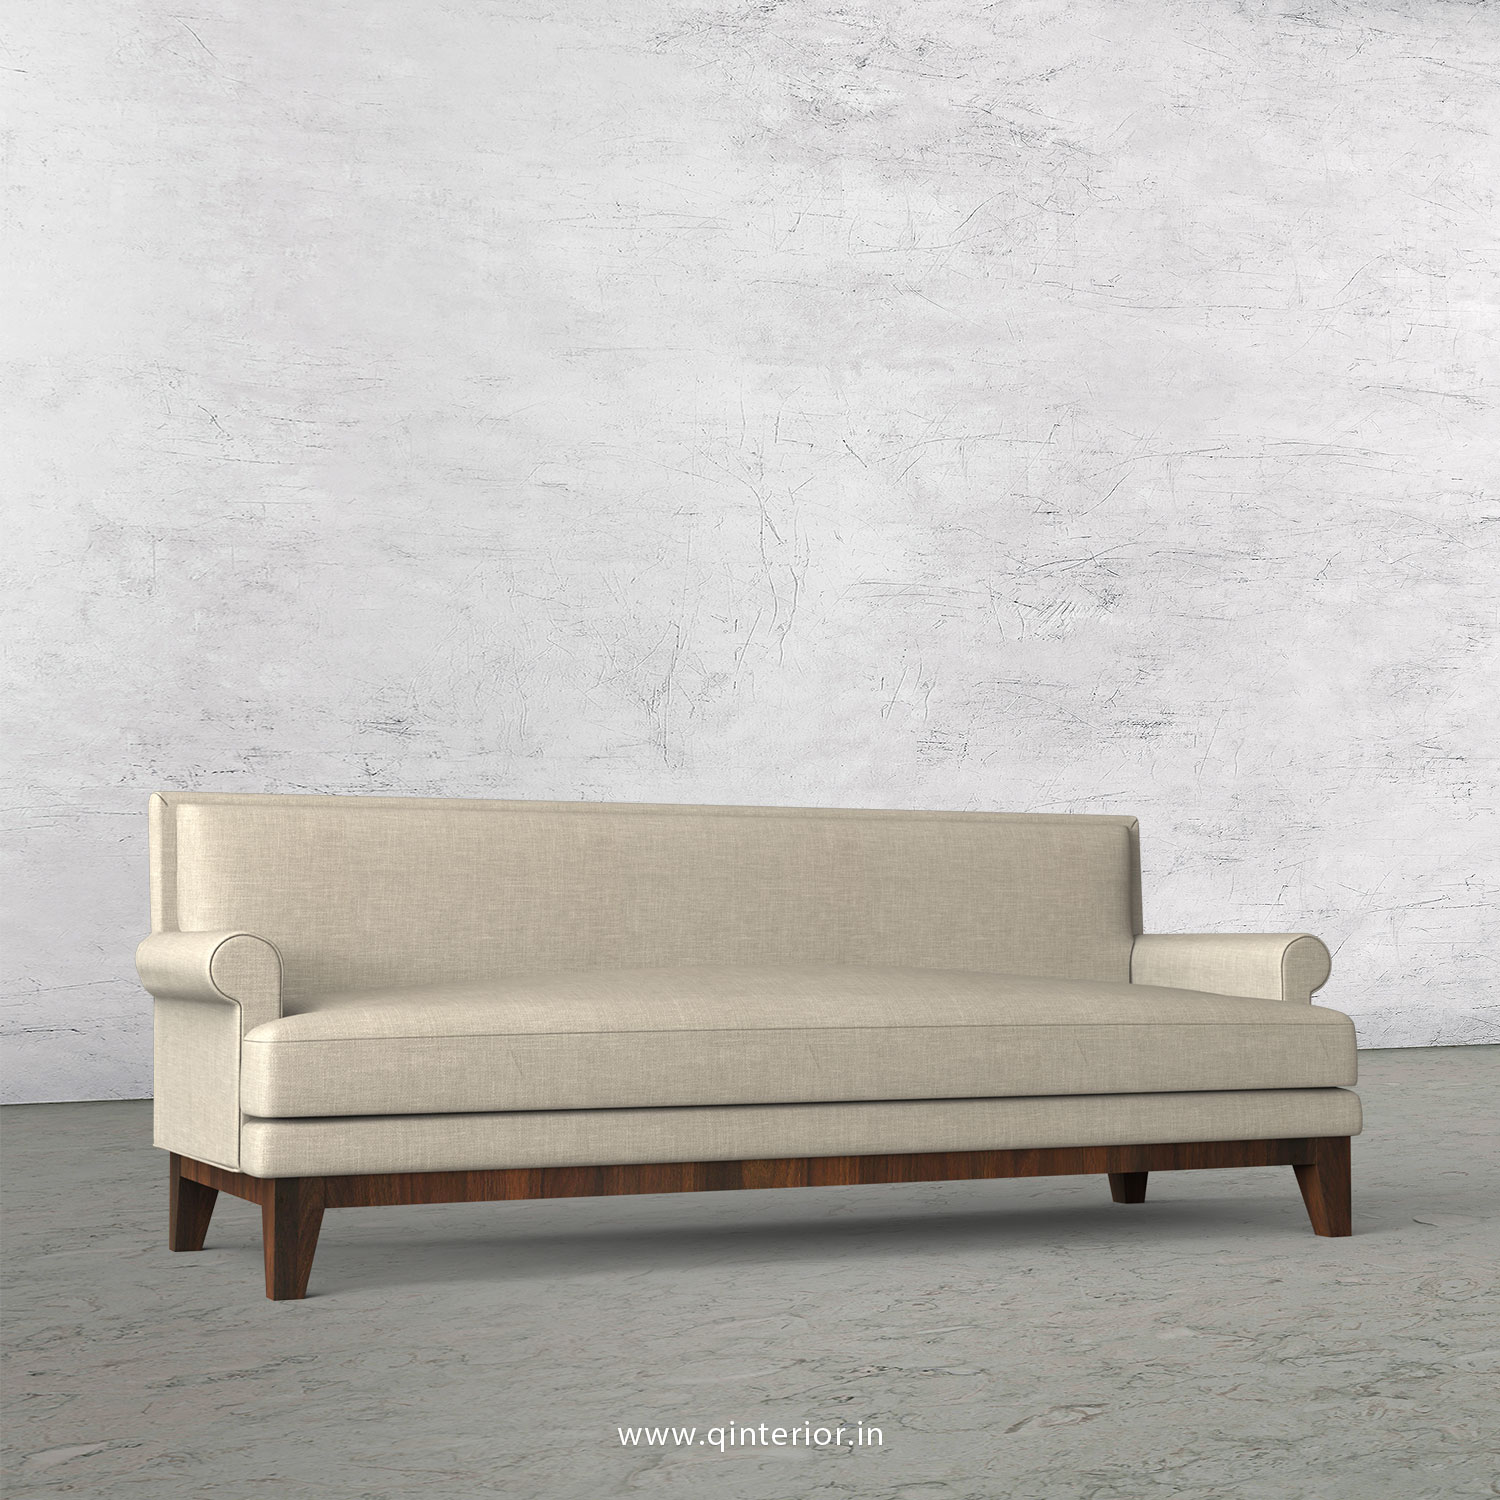 Aviana 3 Seater Sofa in Cotton Plain - SFA001 CP12